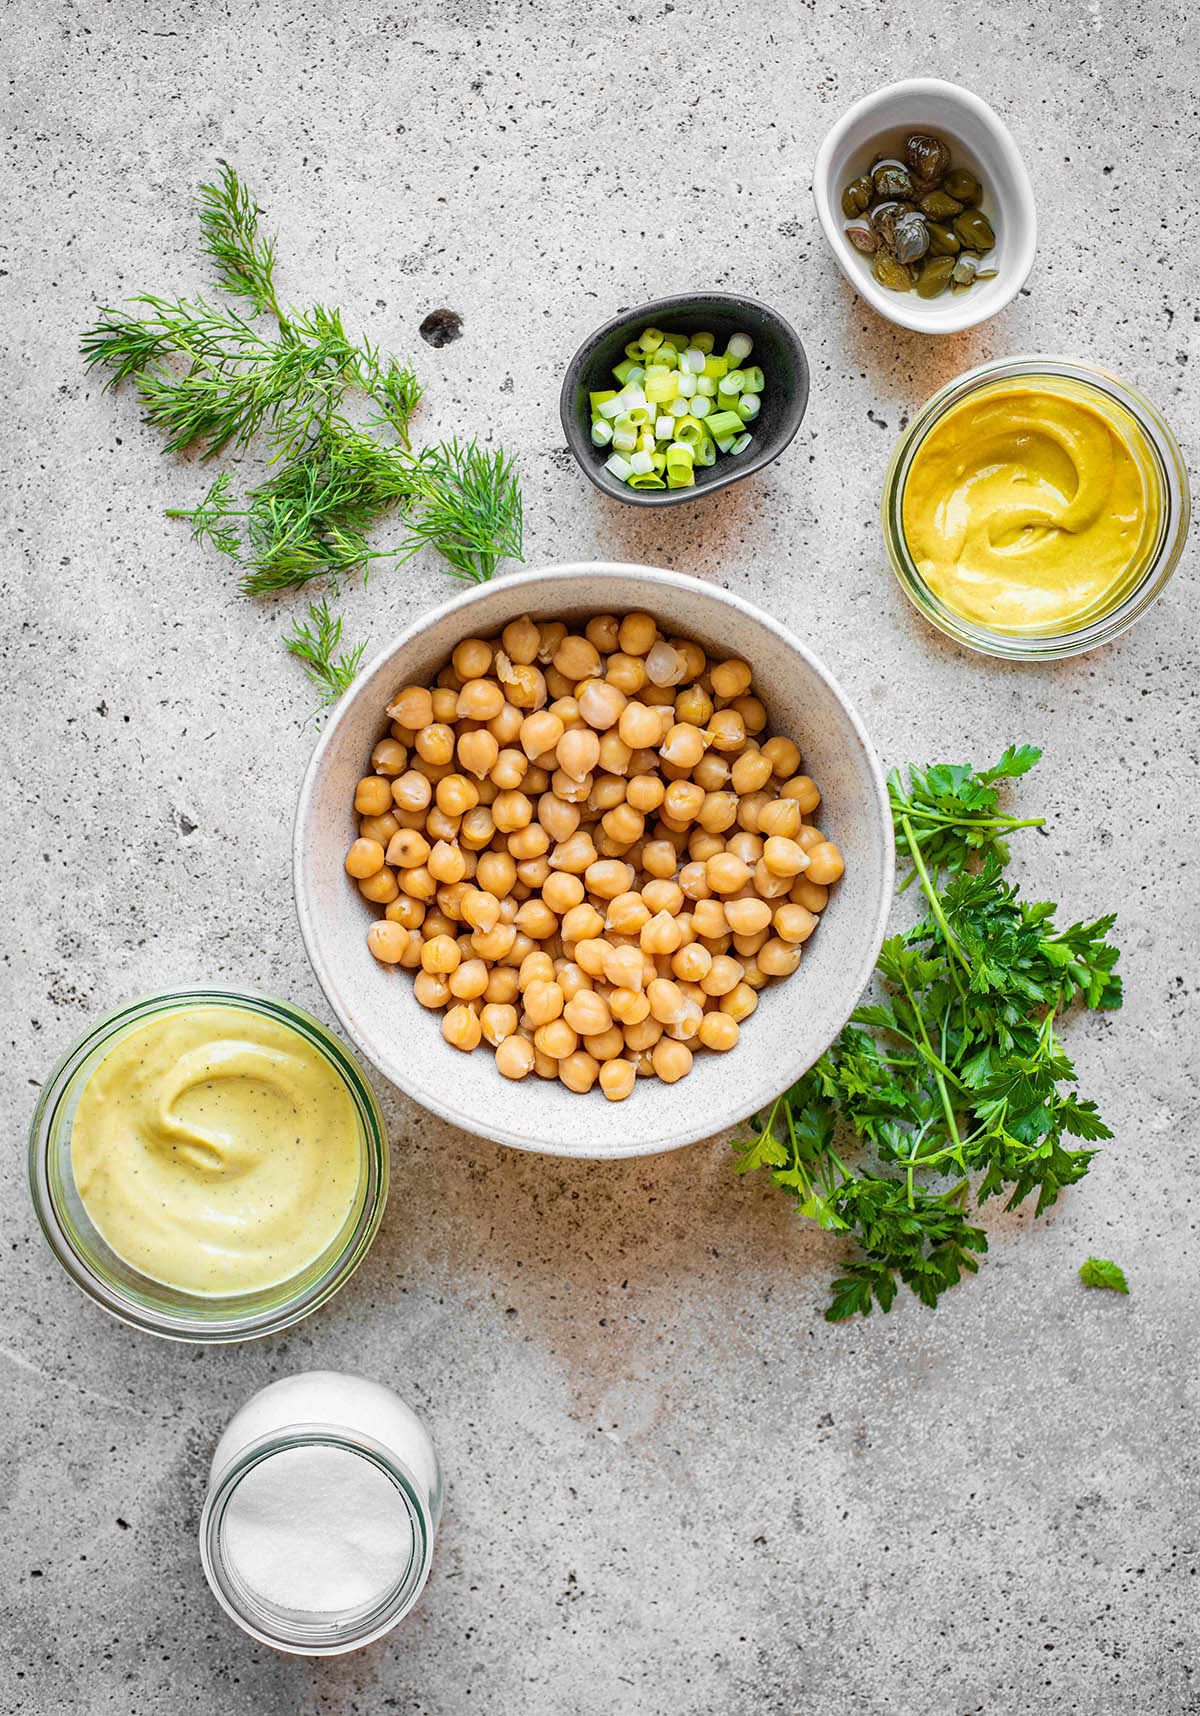 A bowl of chickpeas surrounded by mustard and herbs.